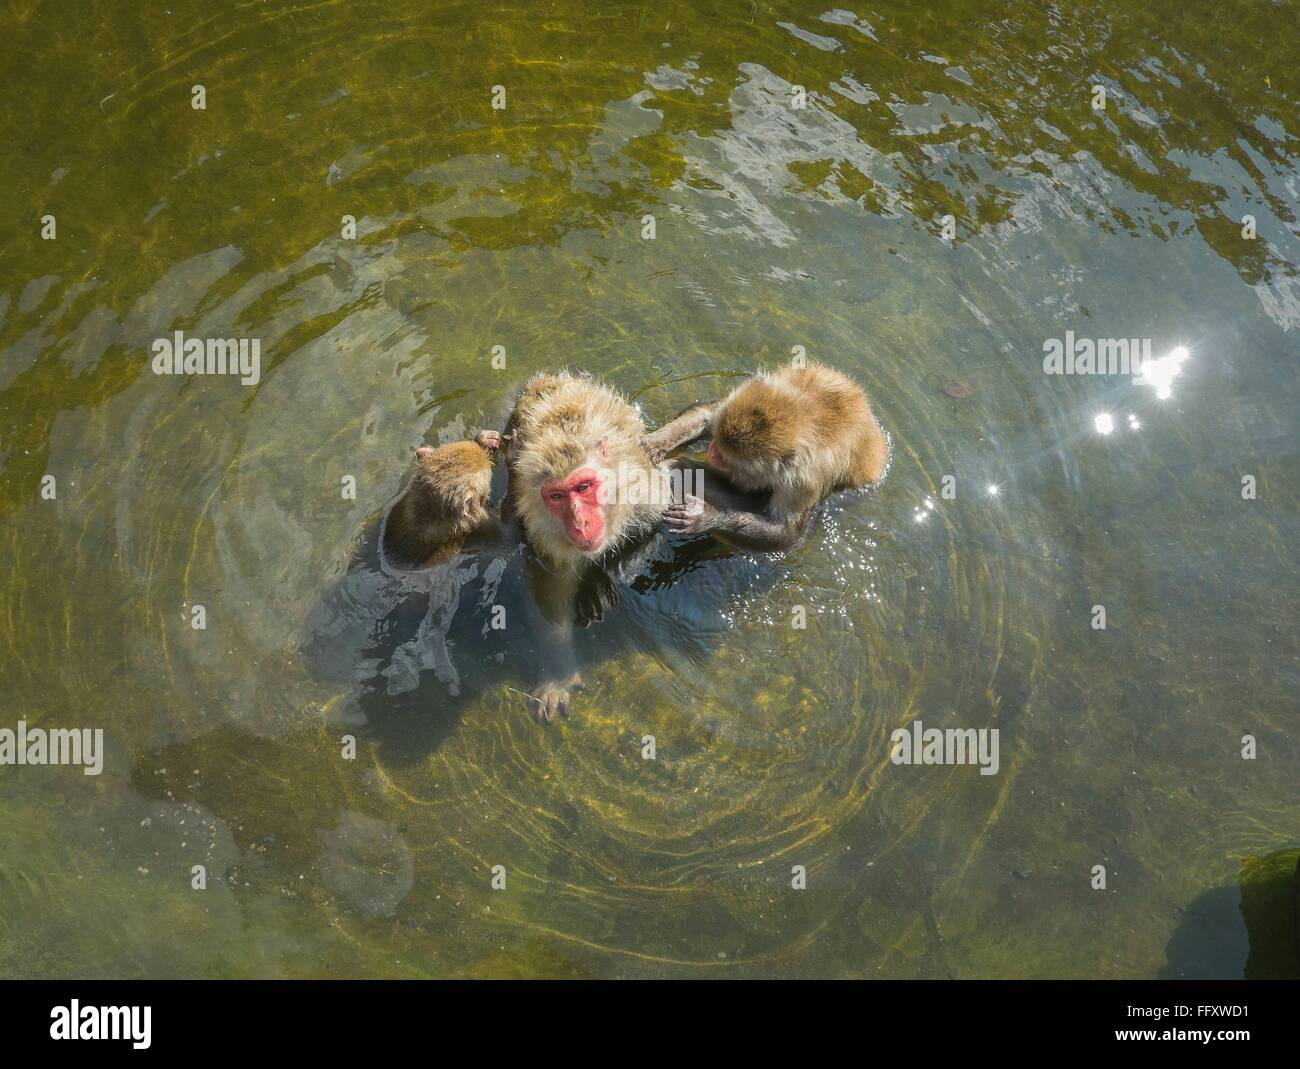 High Angle View Of Monkeys In Water - Stock Image